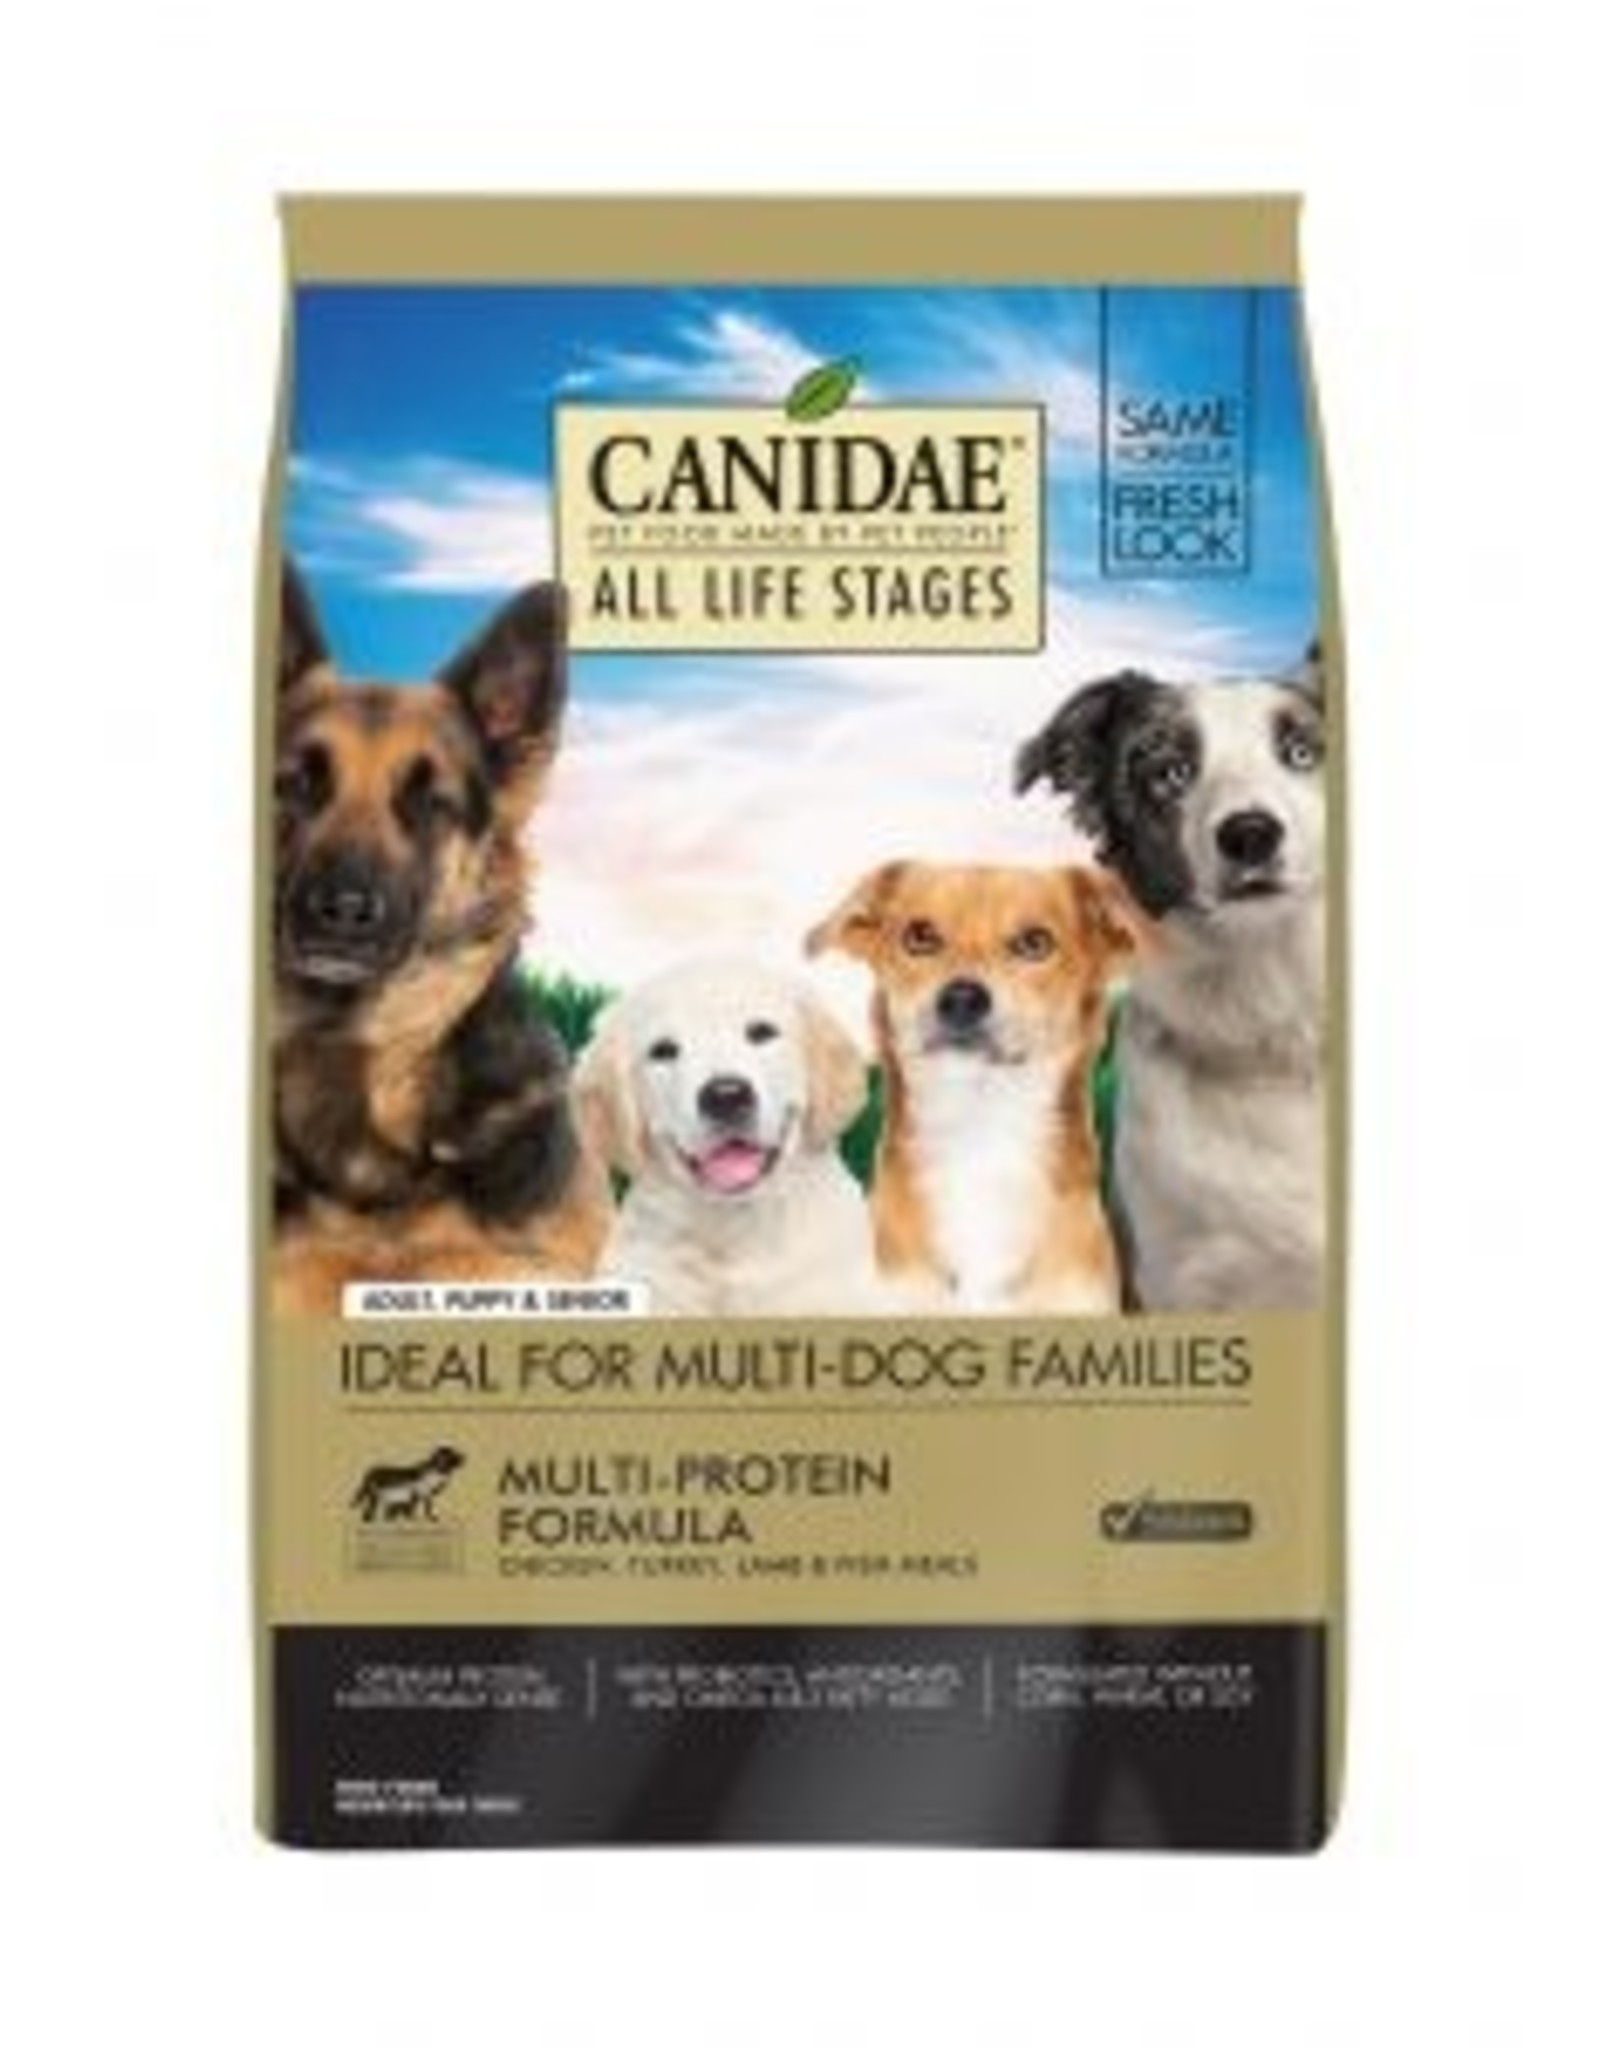 CANIDAE PET FOODS CANIDAE DOG ADULT MULTI-PROTEIN 15LBS